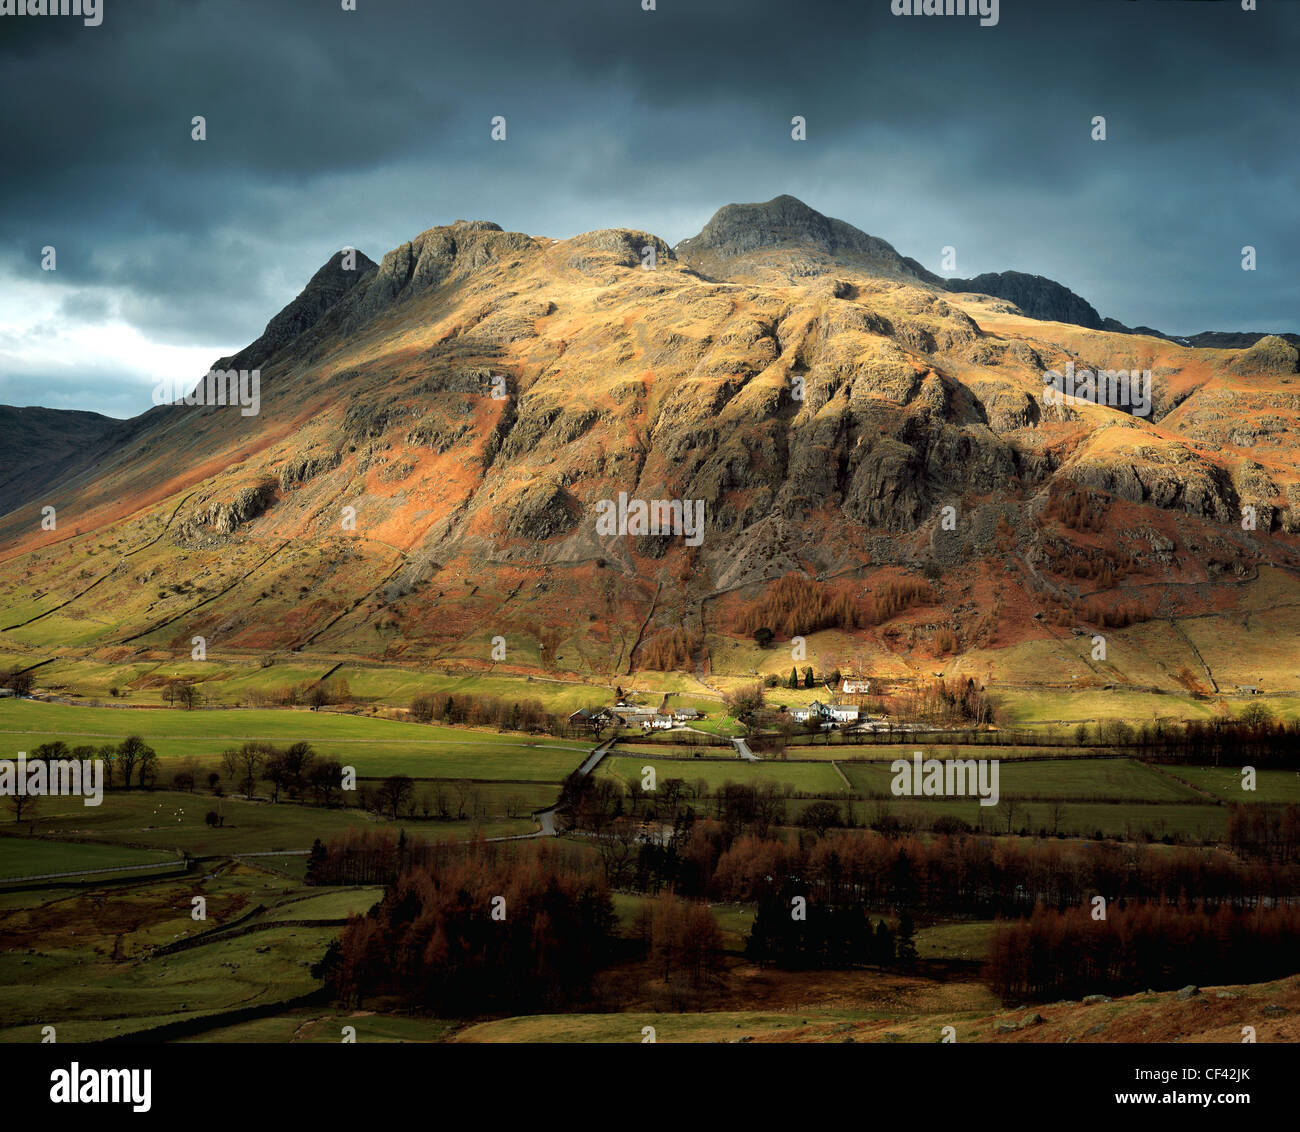 Looking across the remote and rugged Langdale Valley in the Lake District. - Stock Image